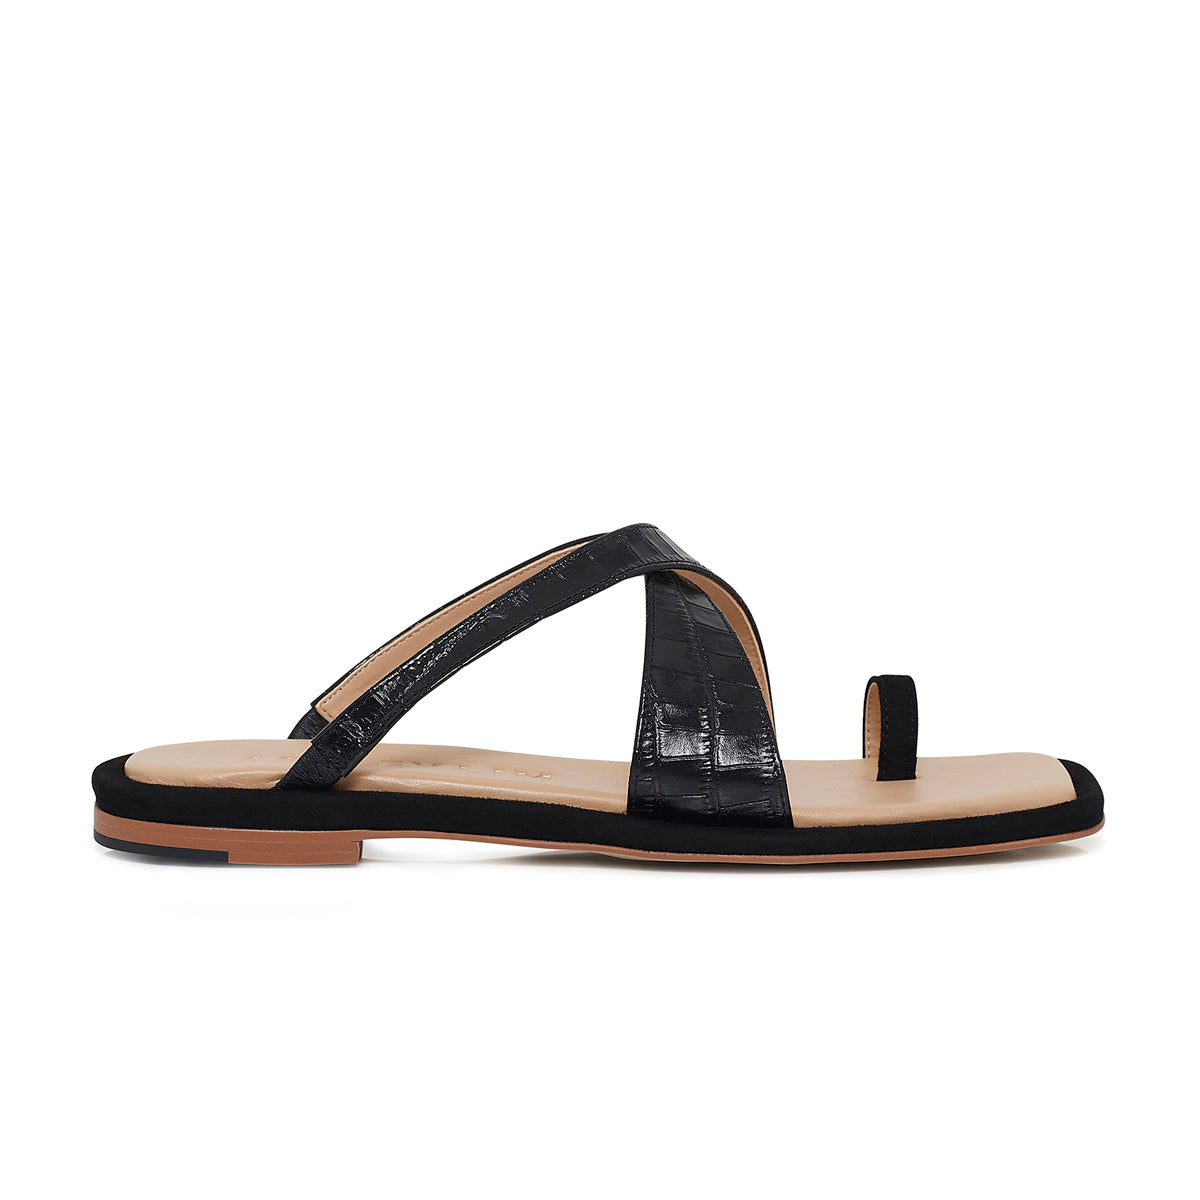 FEI FEI Leather Slides - Black